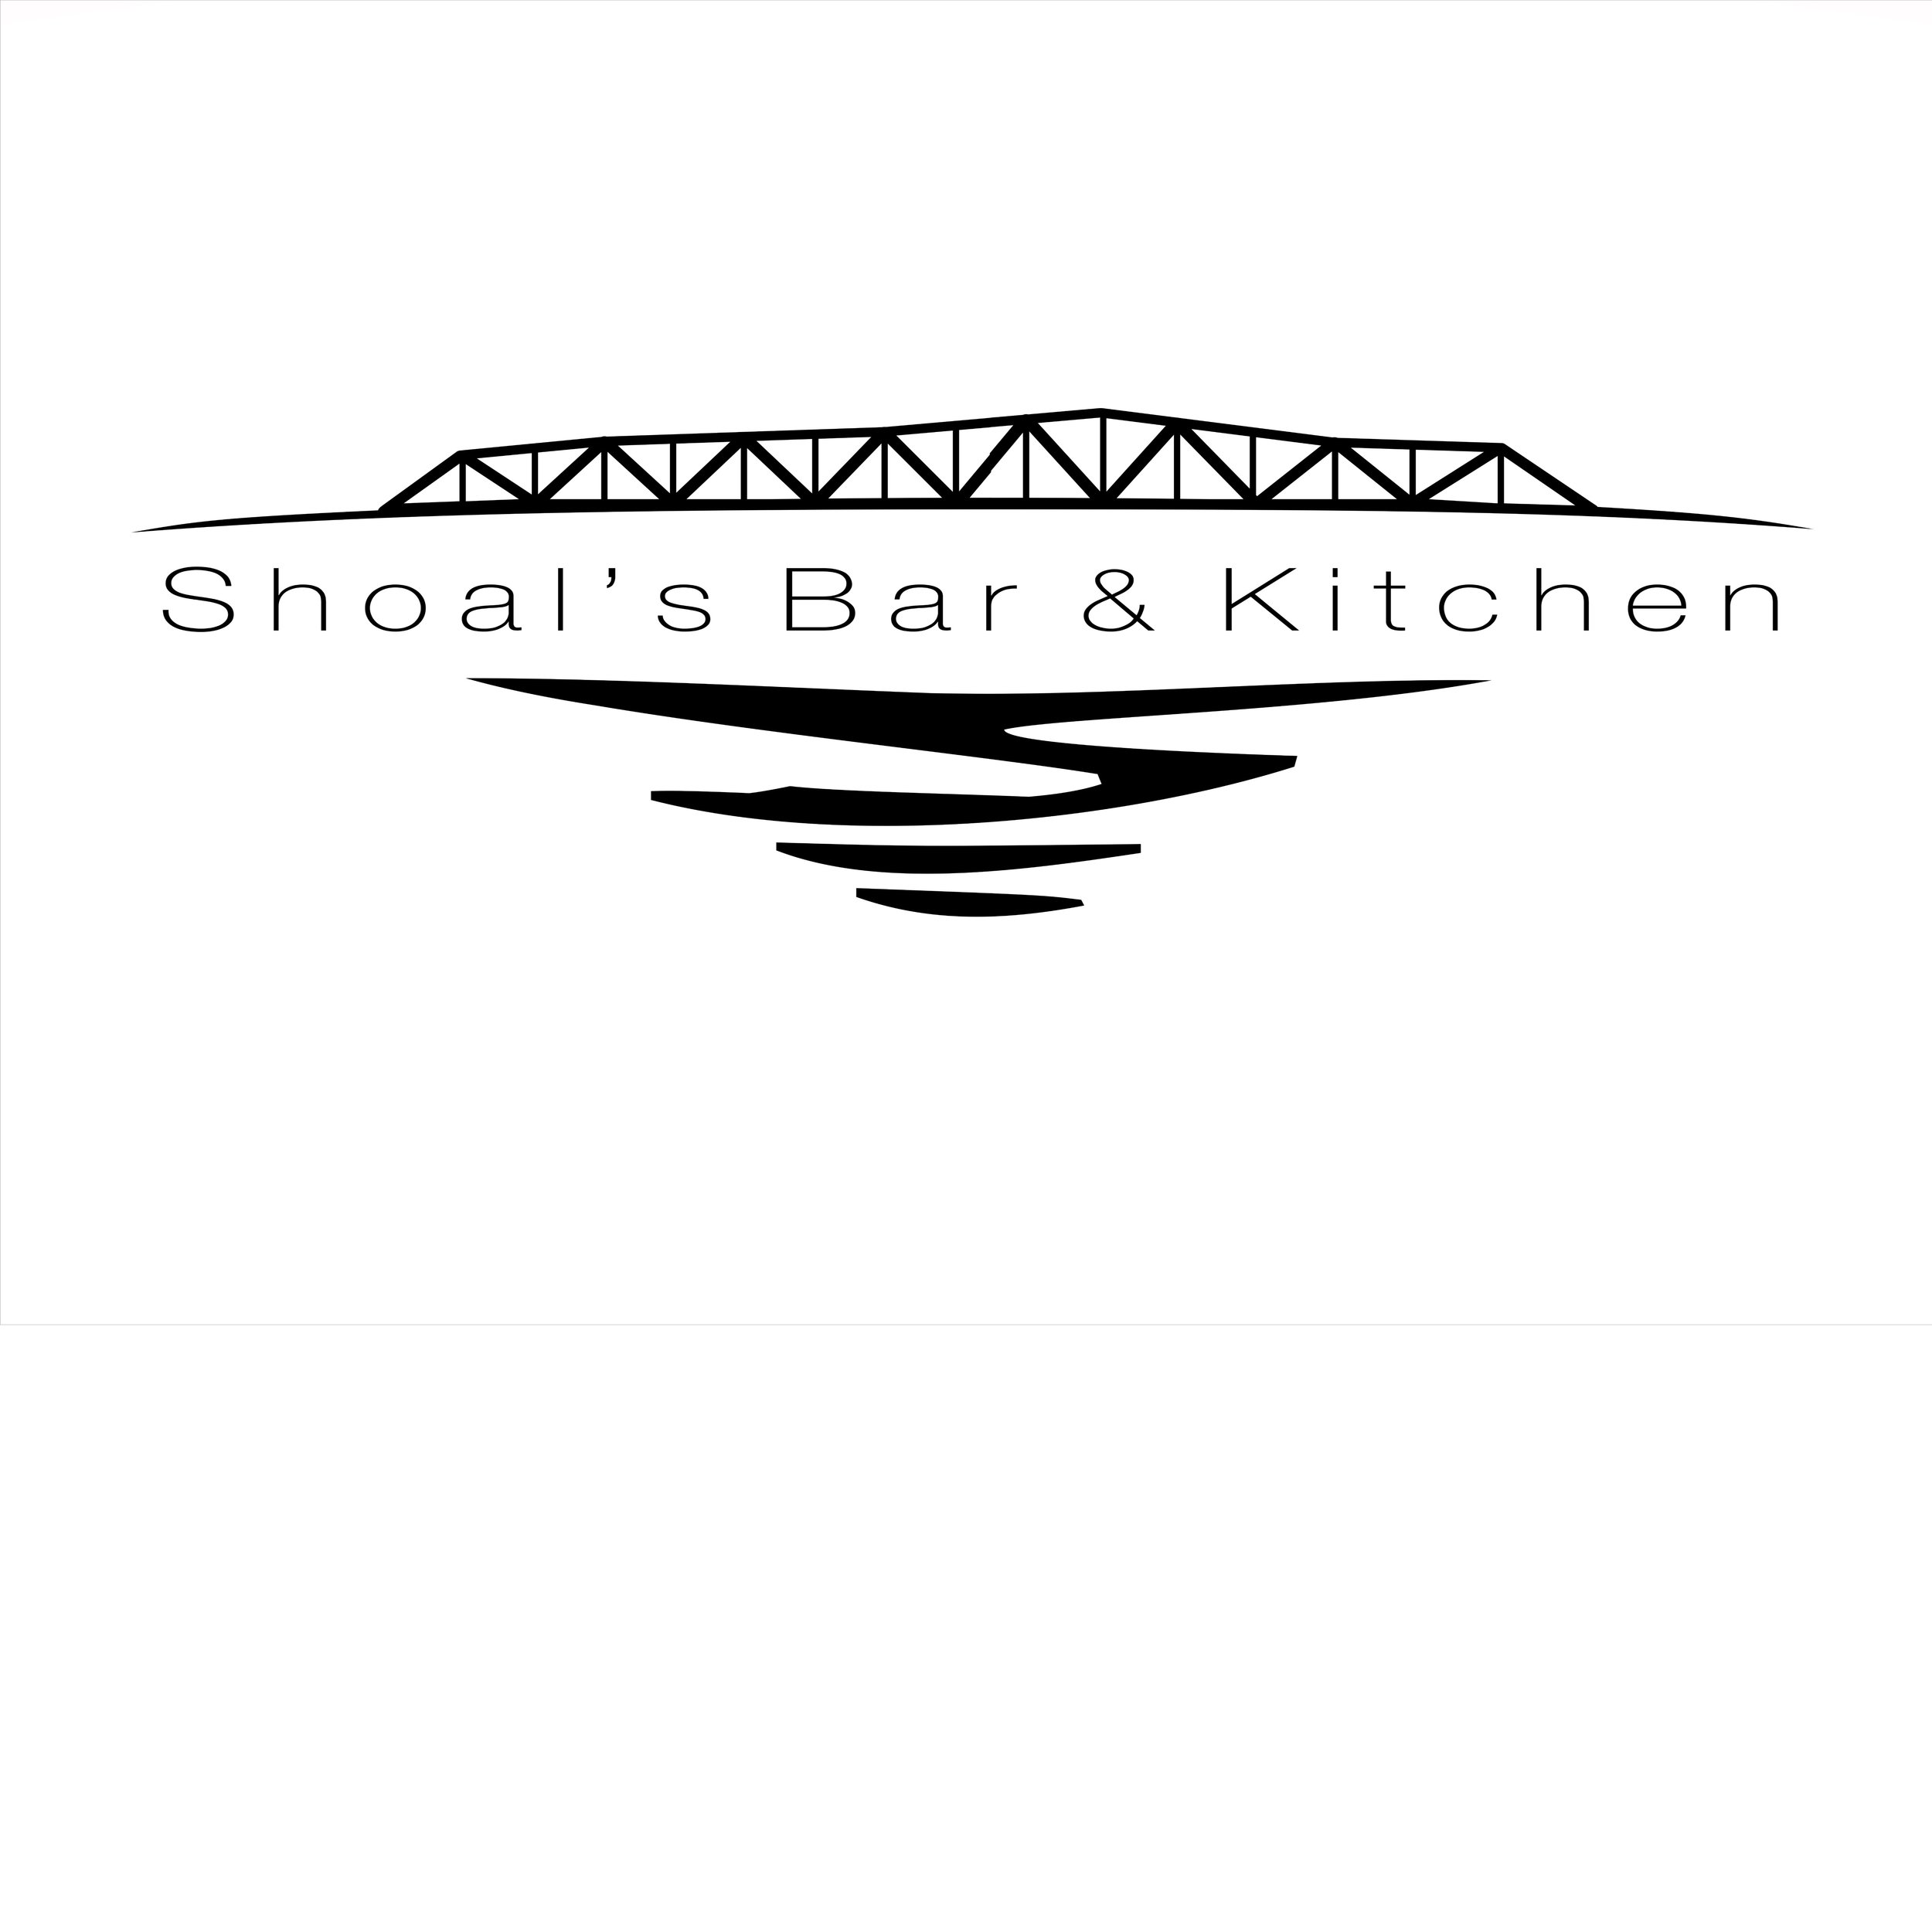 Shoals Bar & Kitchen - Locally inspired dining & cocktails inside Hotel Indigo in Downtown Tuscaloosa with cozy seating, plush couches and al fresco dining options.Located inside Hotel Indigo Downtown111 Greensboro AvenueTuscaloosa, Alabama 35401